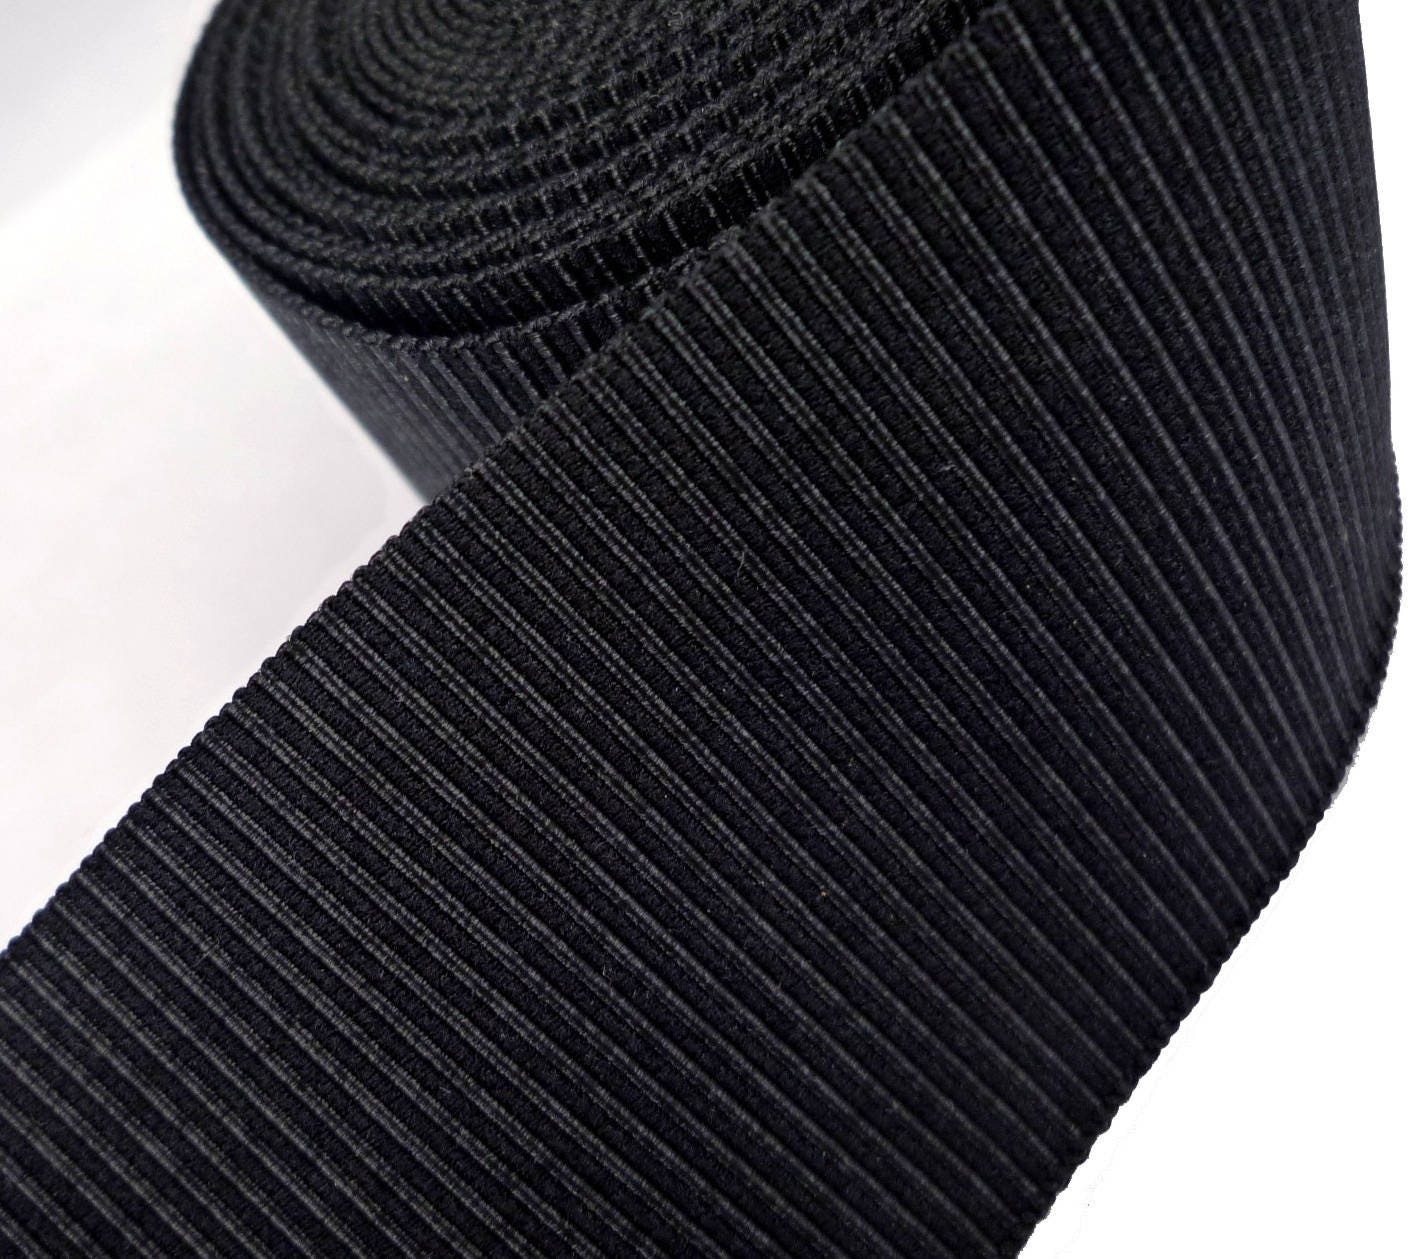 Strong Thick & Stretch Black Petersham Ribbon Grosgrain